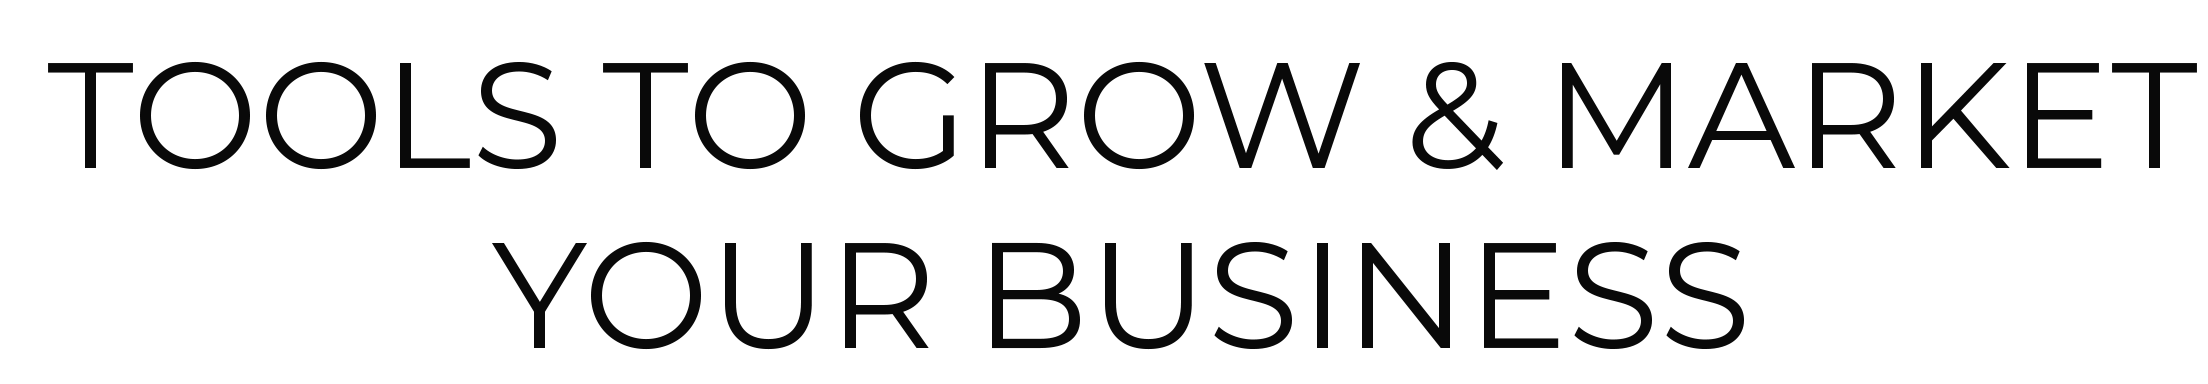 TOOLS TO GROW AND MARKET YOUR BUSINESS.png